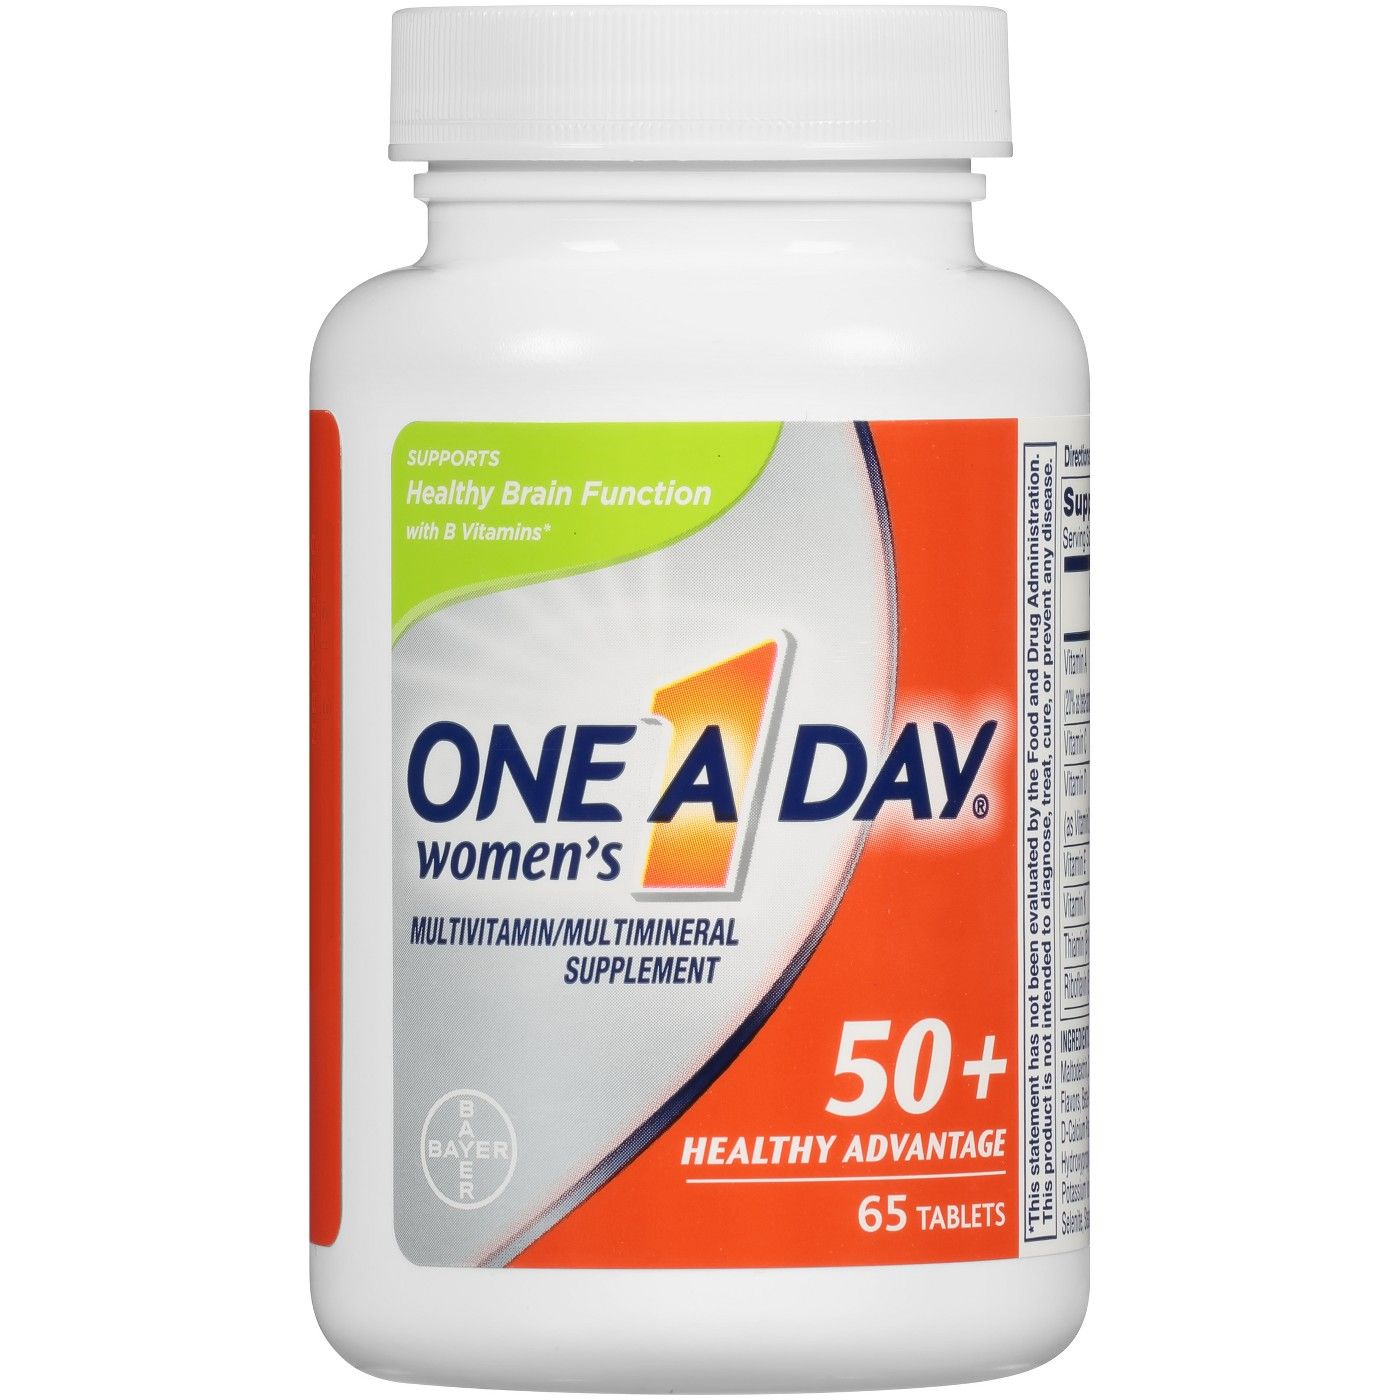 One A Day Women S 50 Health Advantage Multivitamin Multimineral Dietary Supplement Tablets 65ct Multivitamin Heart Medication Healthy Brain Function